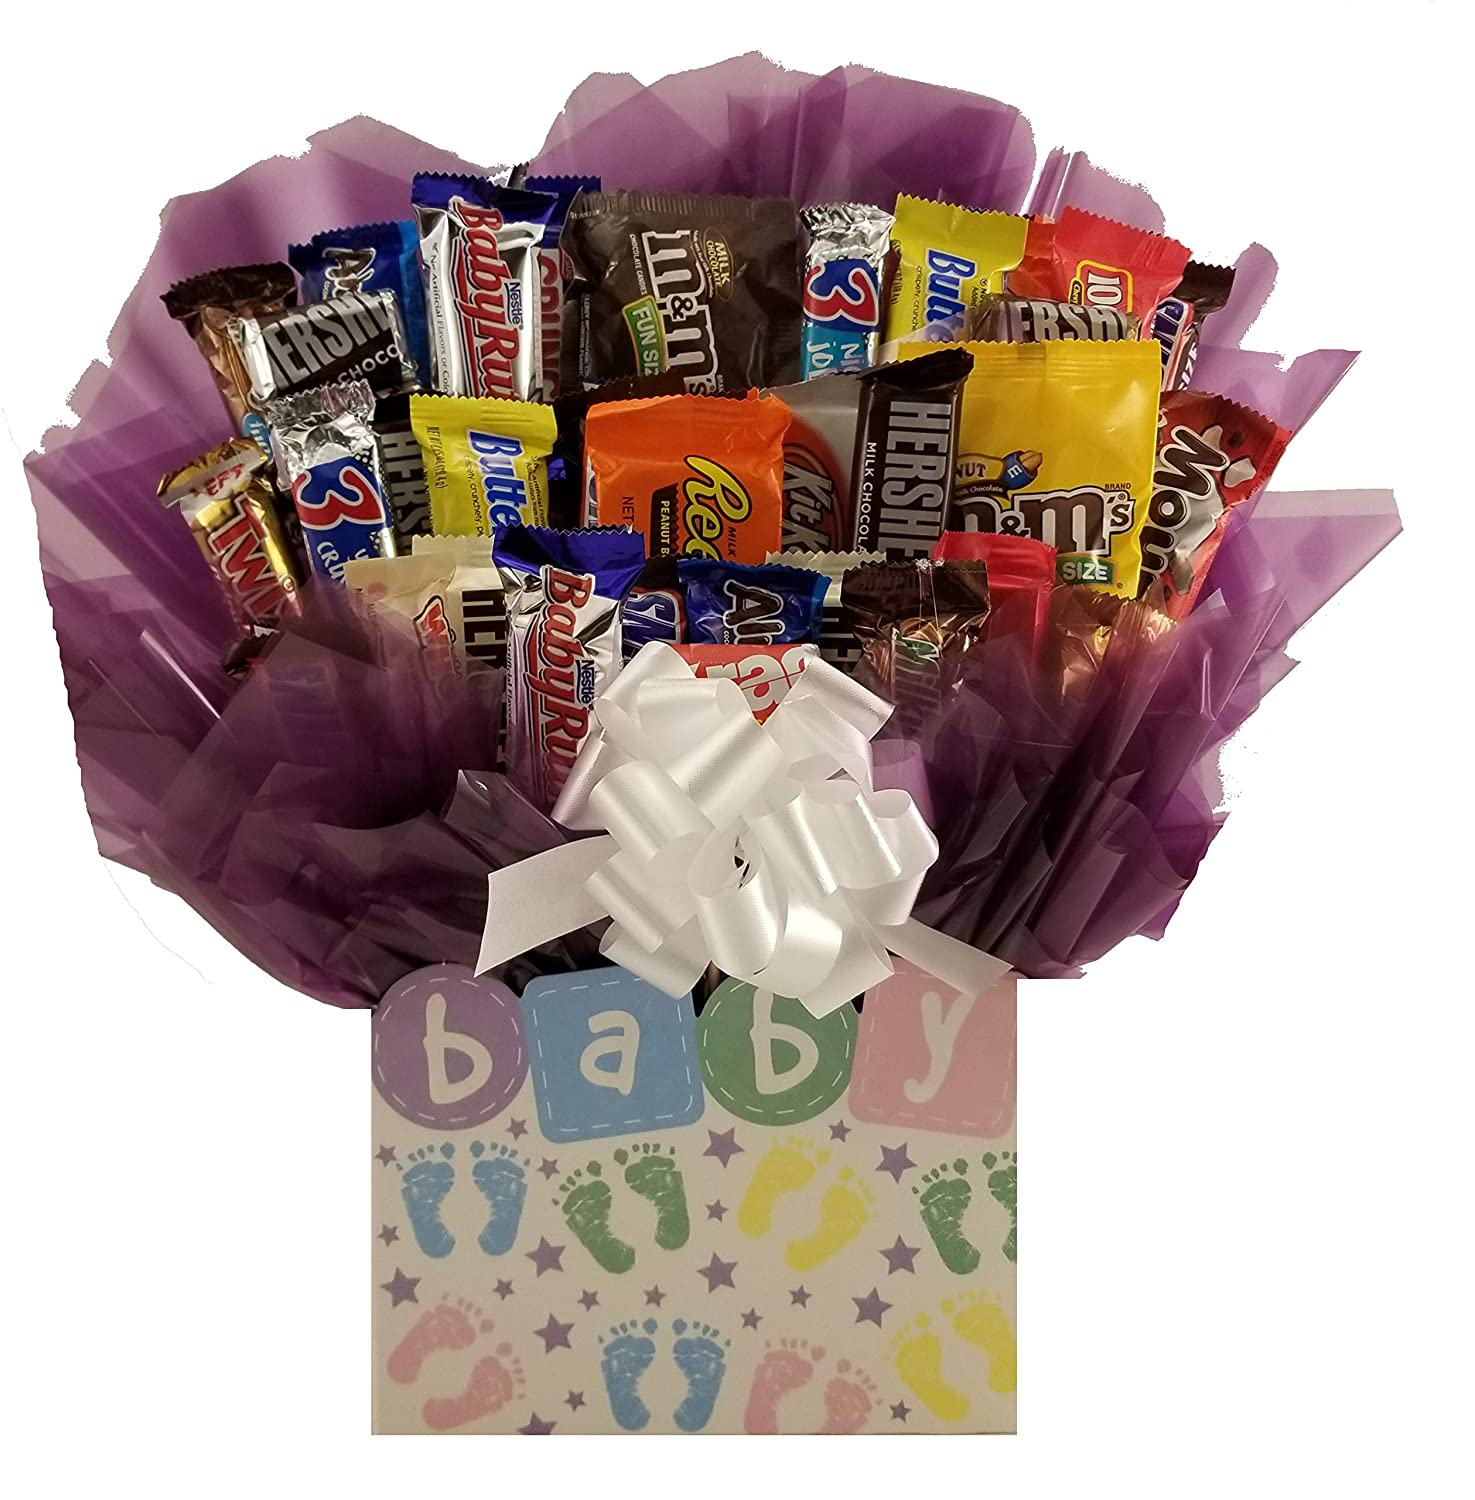 Hugs & Kisses Chocolate Candy Bouquet gift basket box - Great gift for Birthday, Get Well, Thank You, Congratulations, Christmas or for any occasion for family, friends or business client customer.